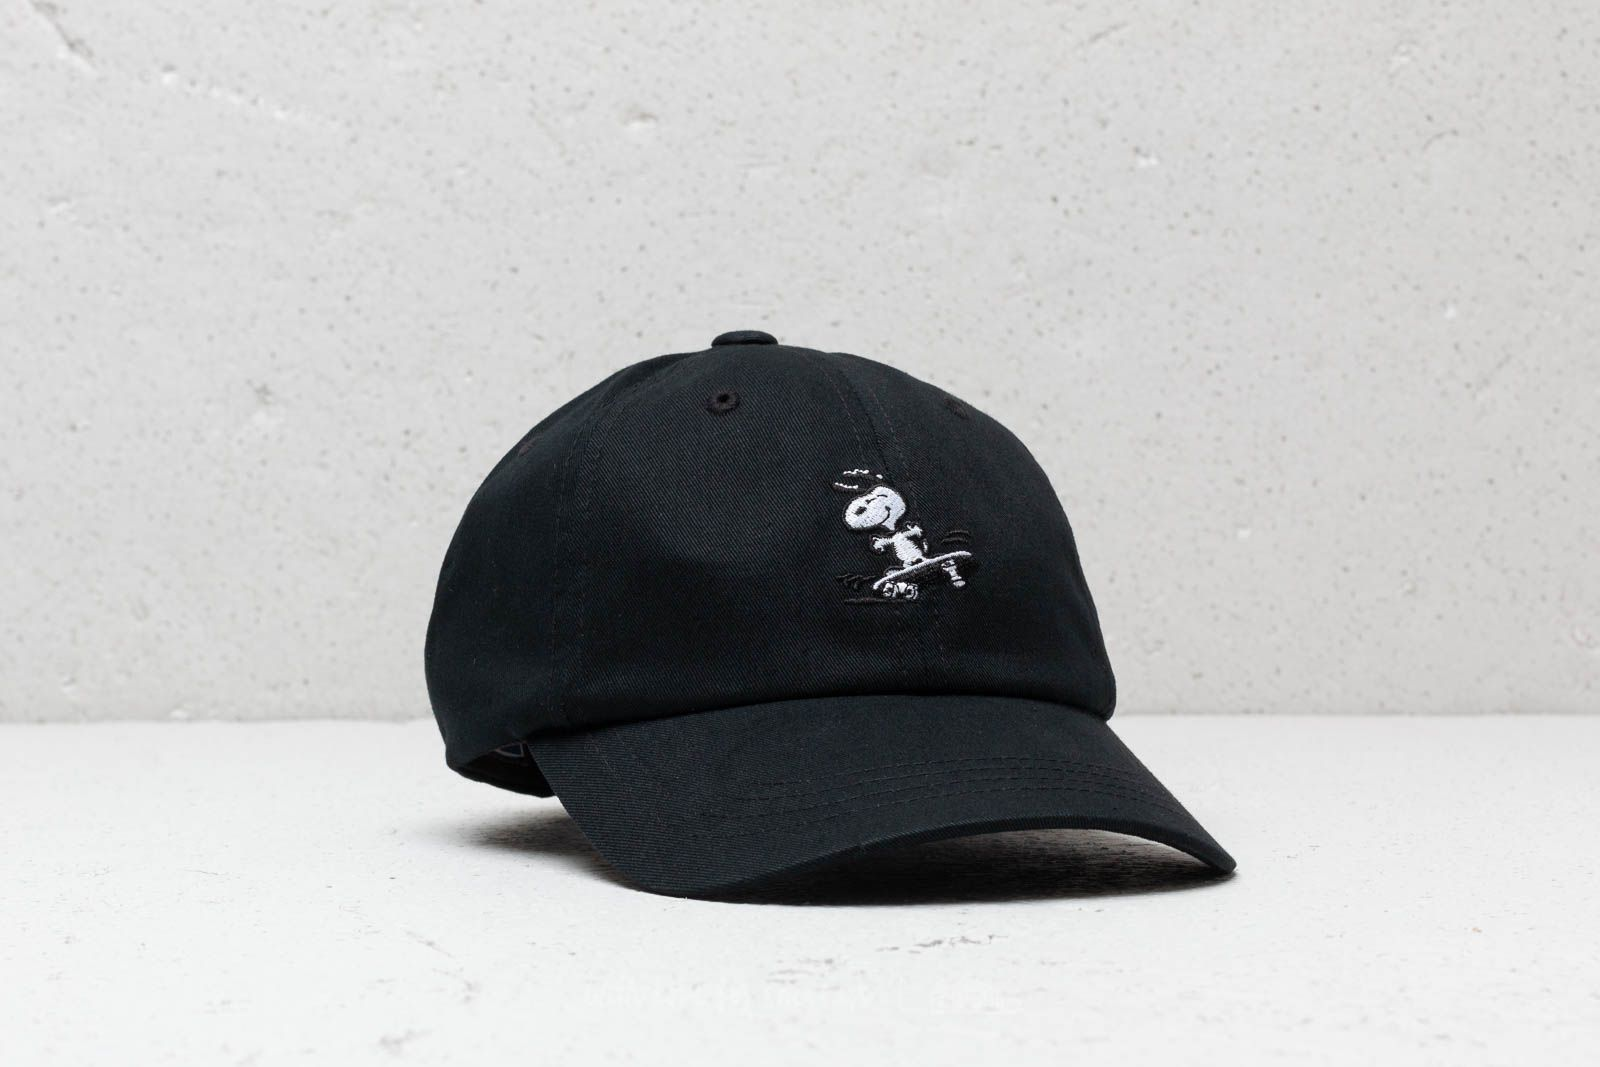 f411280b735 HUF x Peanuts Snoopy SK8 6 P Cap Black at a great price  45 buy at